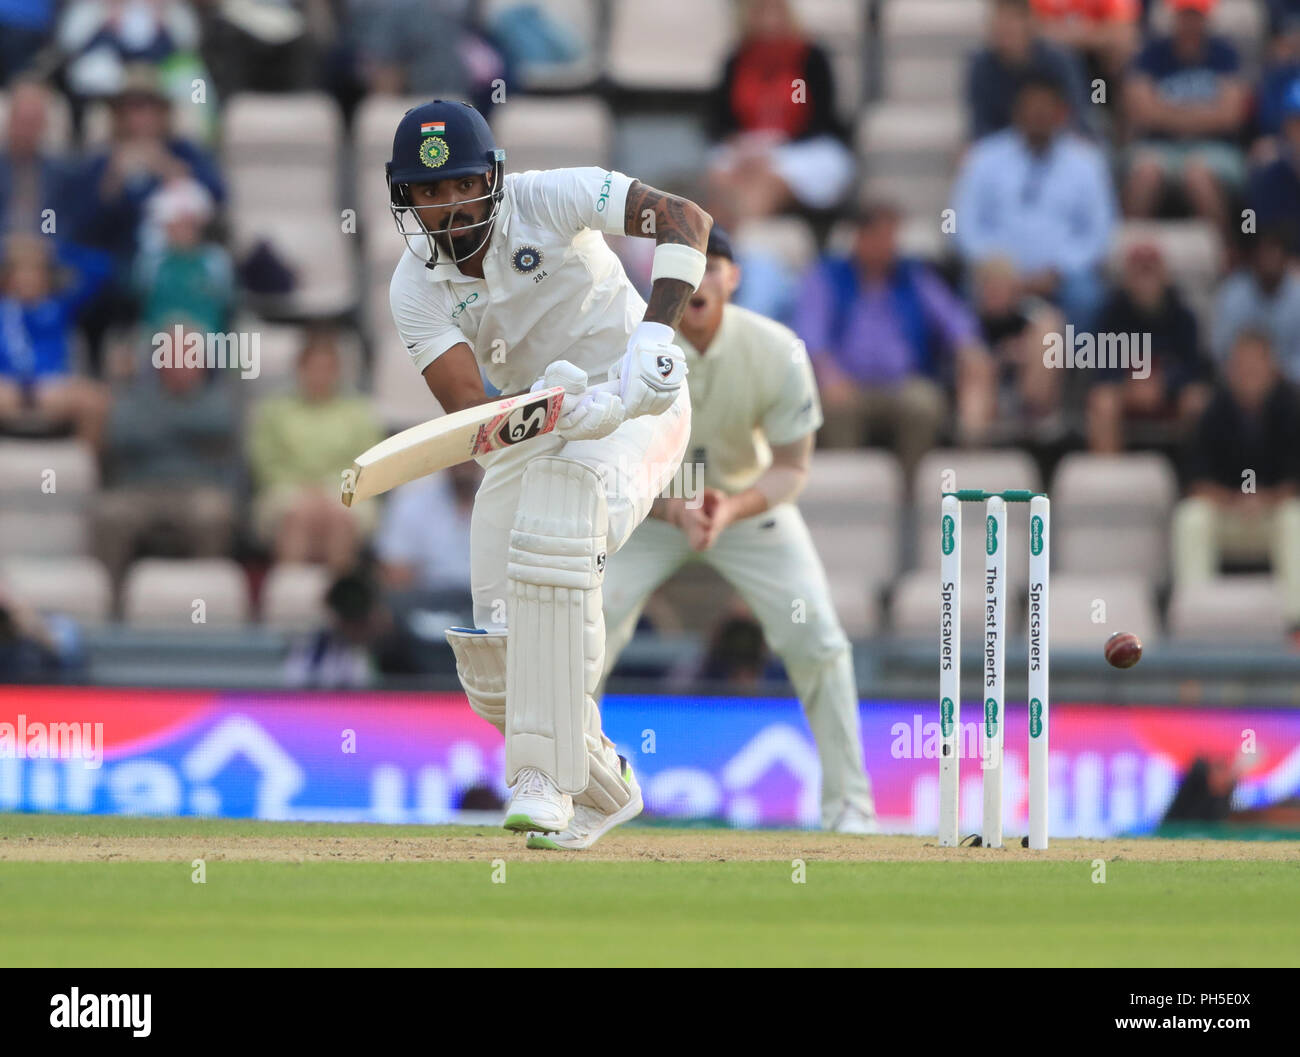 India's KL Rahul hits the ball away during the fourth test at the AGEAS Bowl, Southampton. Stock Photo